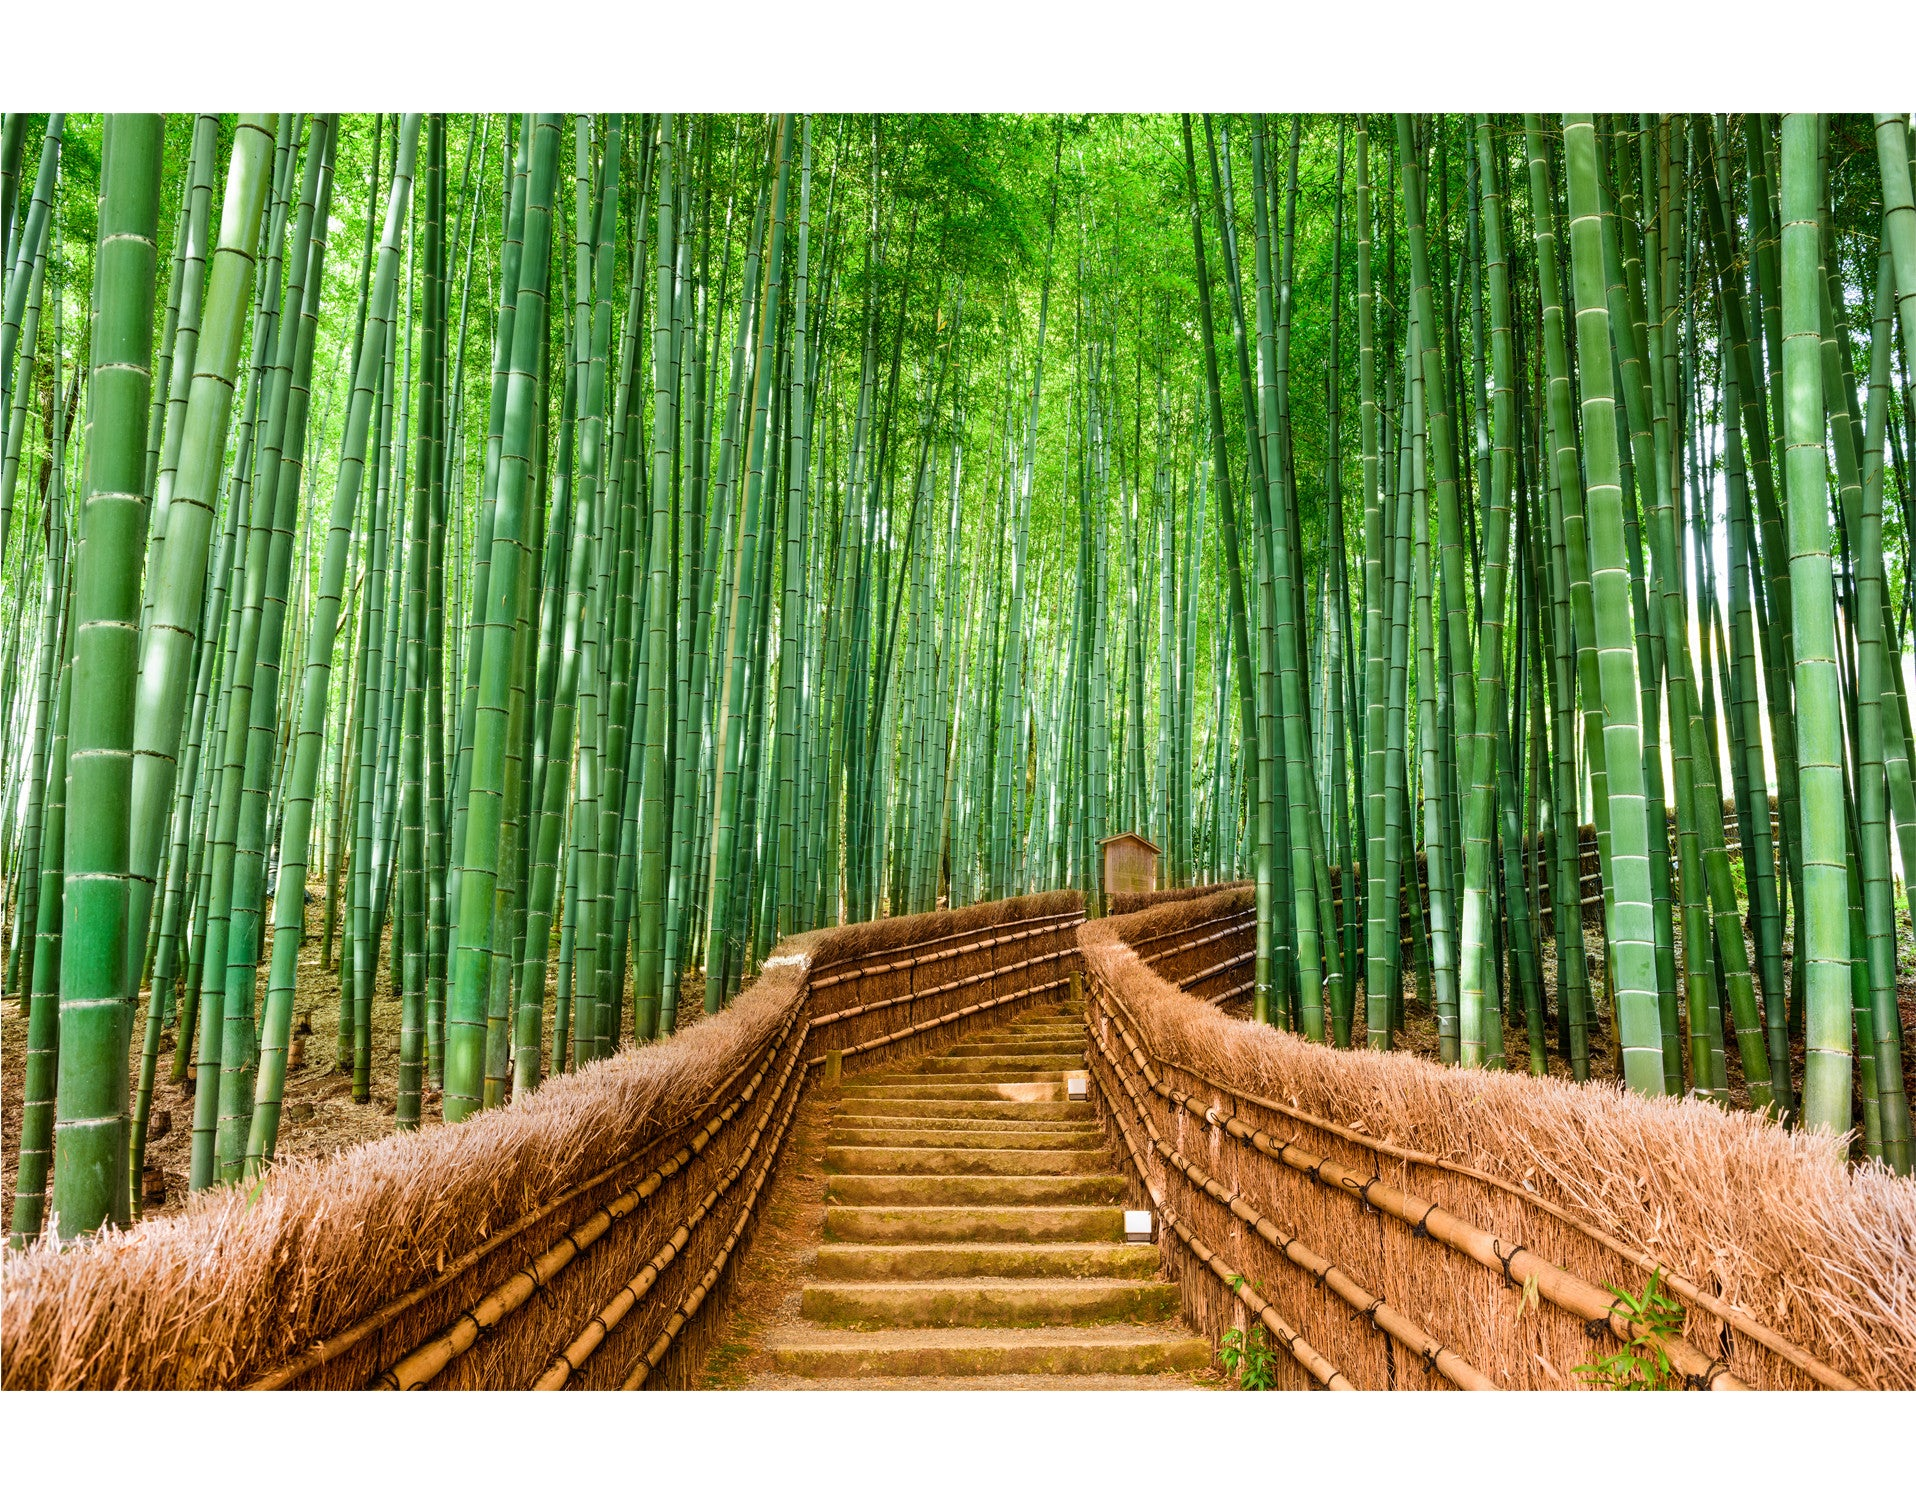 Bamboo forest wall mural 6043 for Bamboo forest wall mural